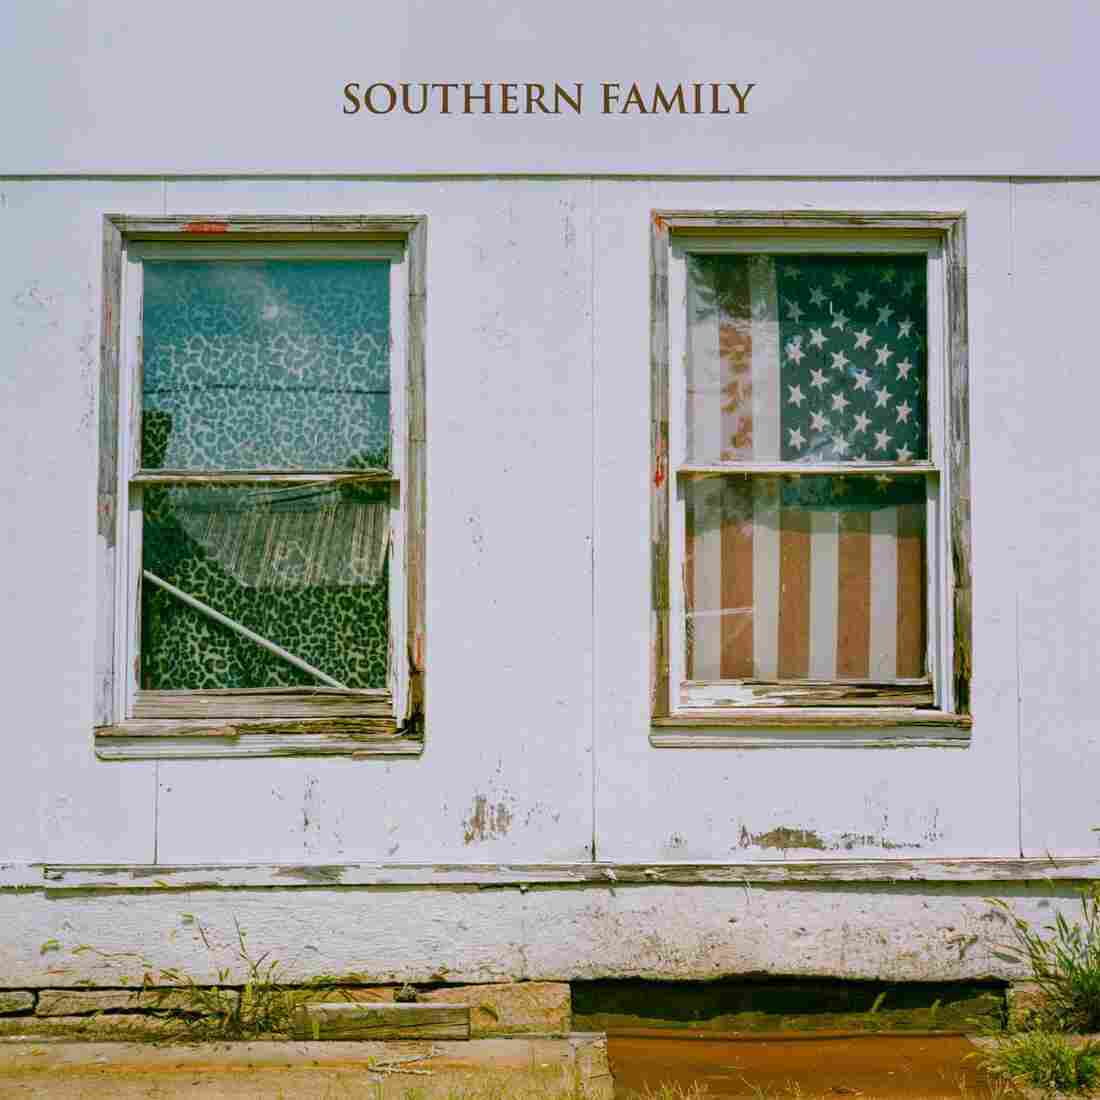 The cover of Dave Cobb's collaborative concept album Southern Family.